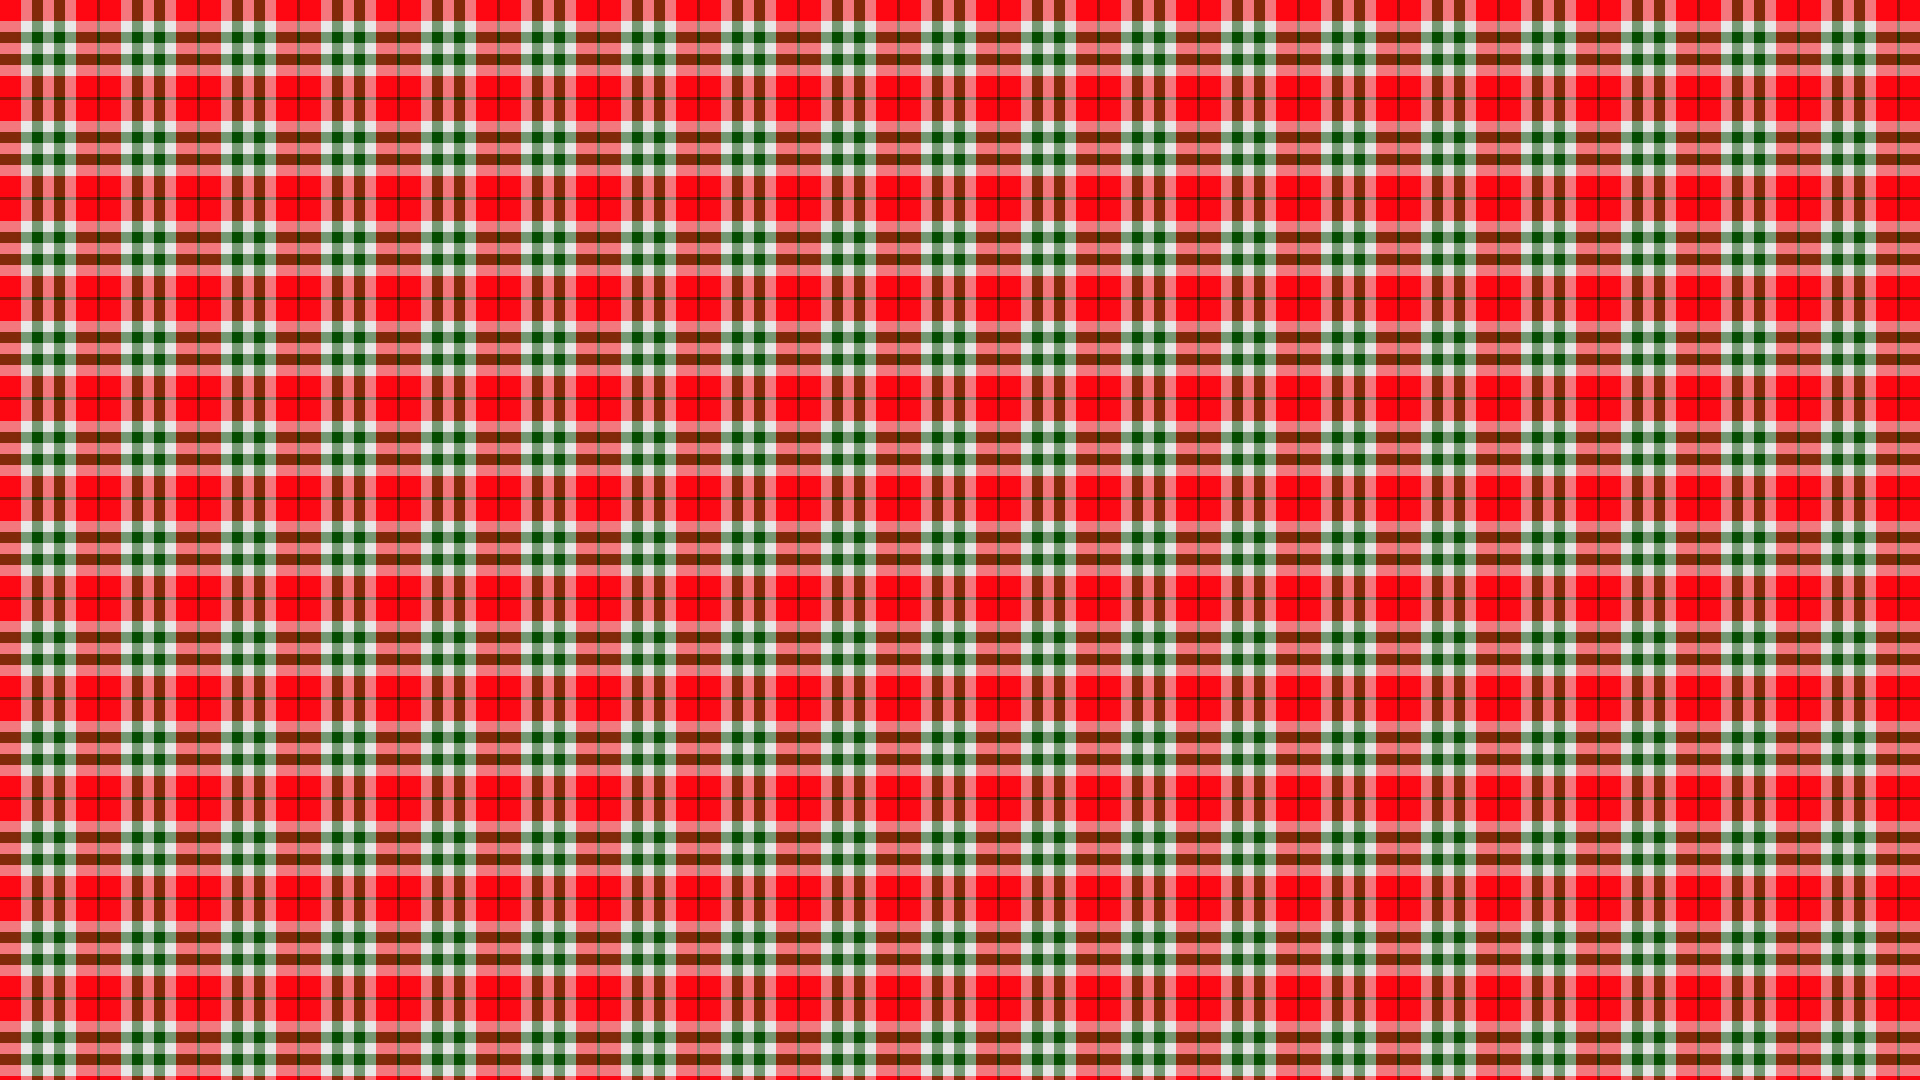 happy christmas plaidjpg - Christmas Plaid